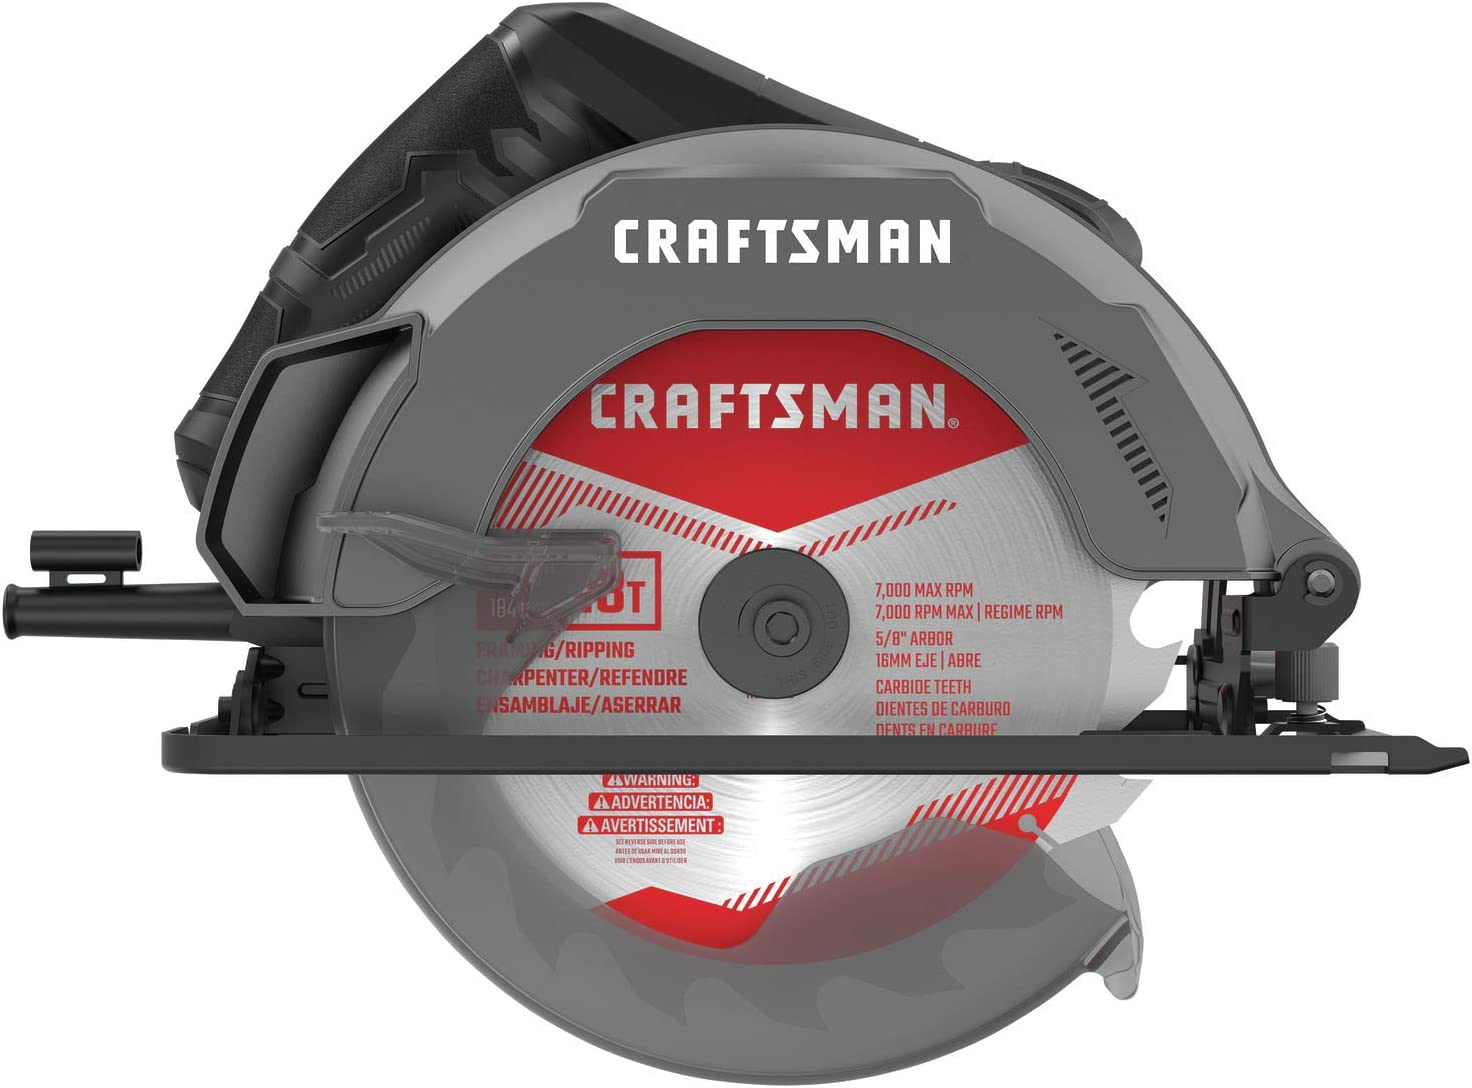 CMES500 & CMES610 5.0-Amp 13-Amp with Jig Saw CRAFTSMAN 7-1/4-Inch ...